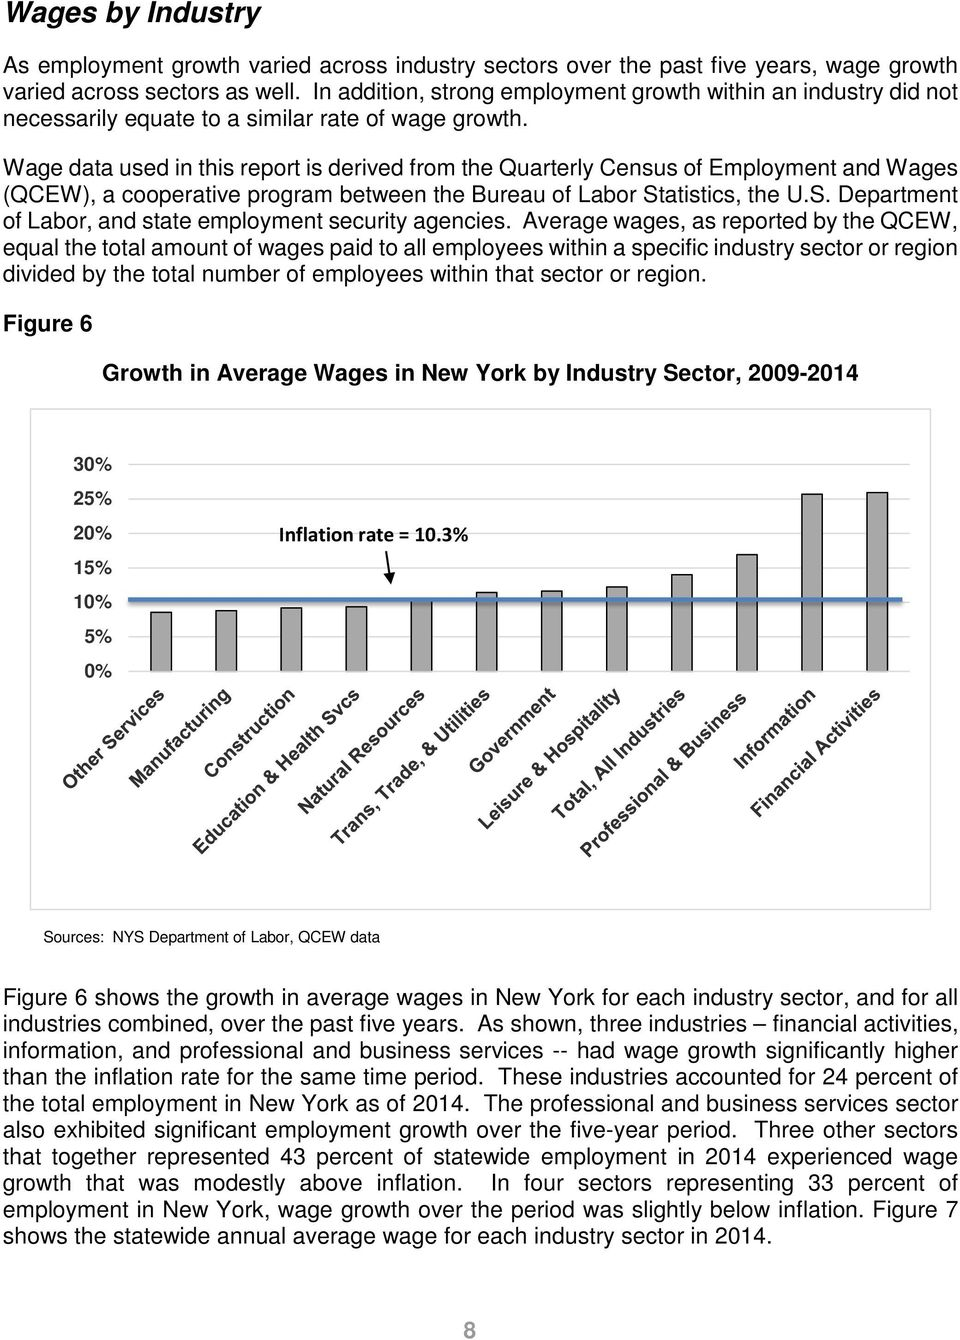 Wage data used in this report is derived from the Quarterly Census of Employment and Wages (QCEW), a cooperative program between the Bureau of Labor St